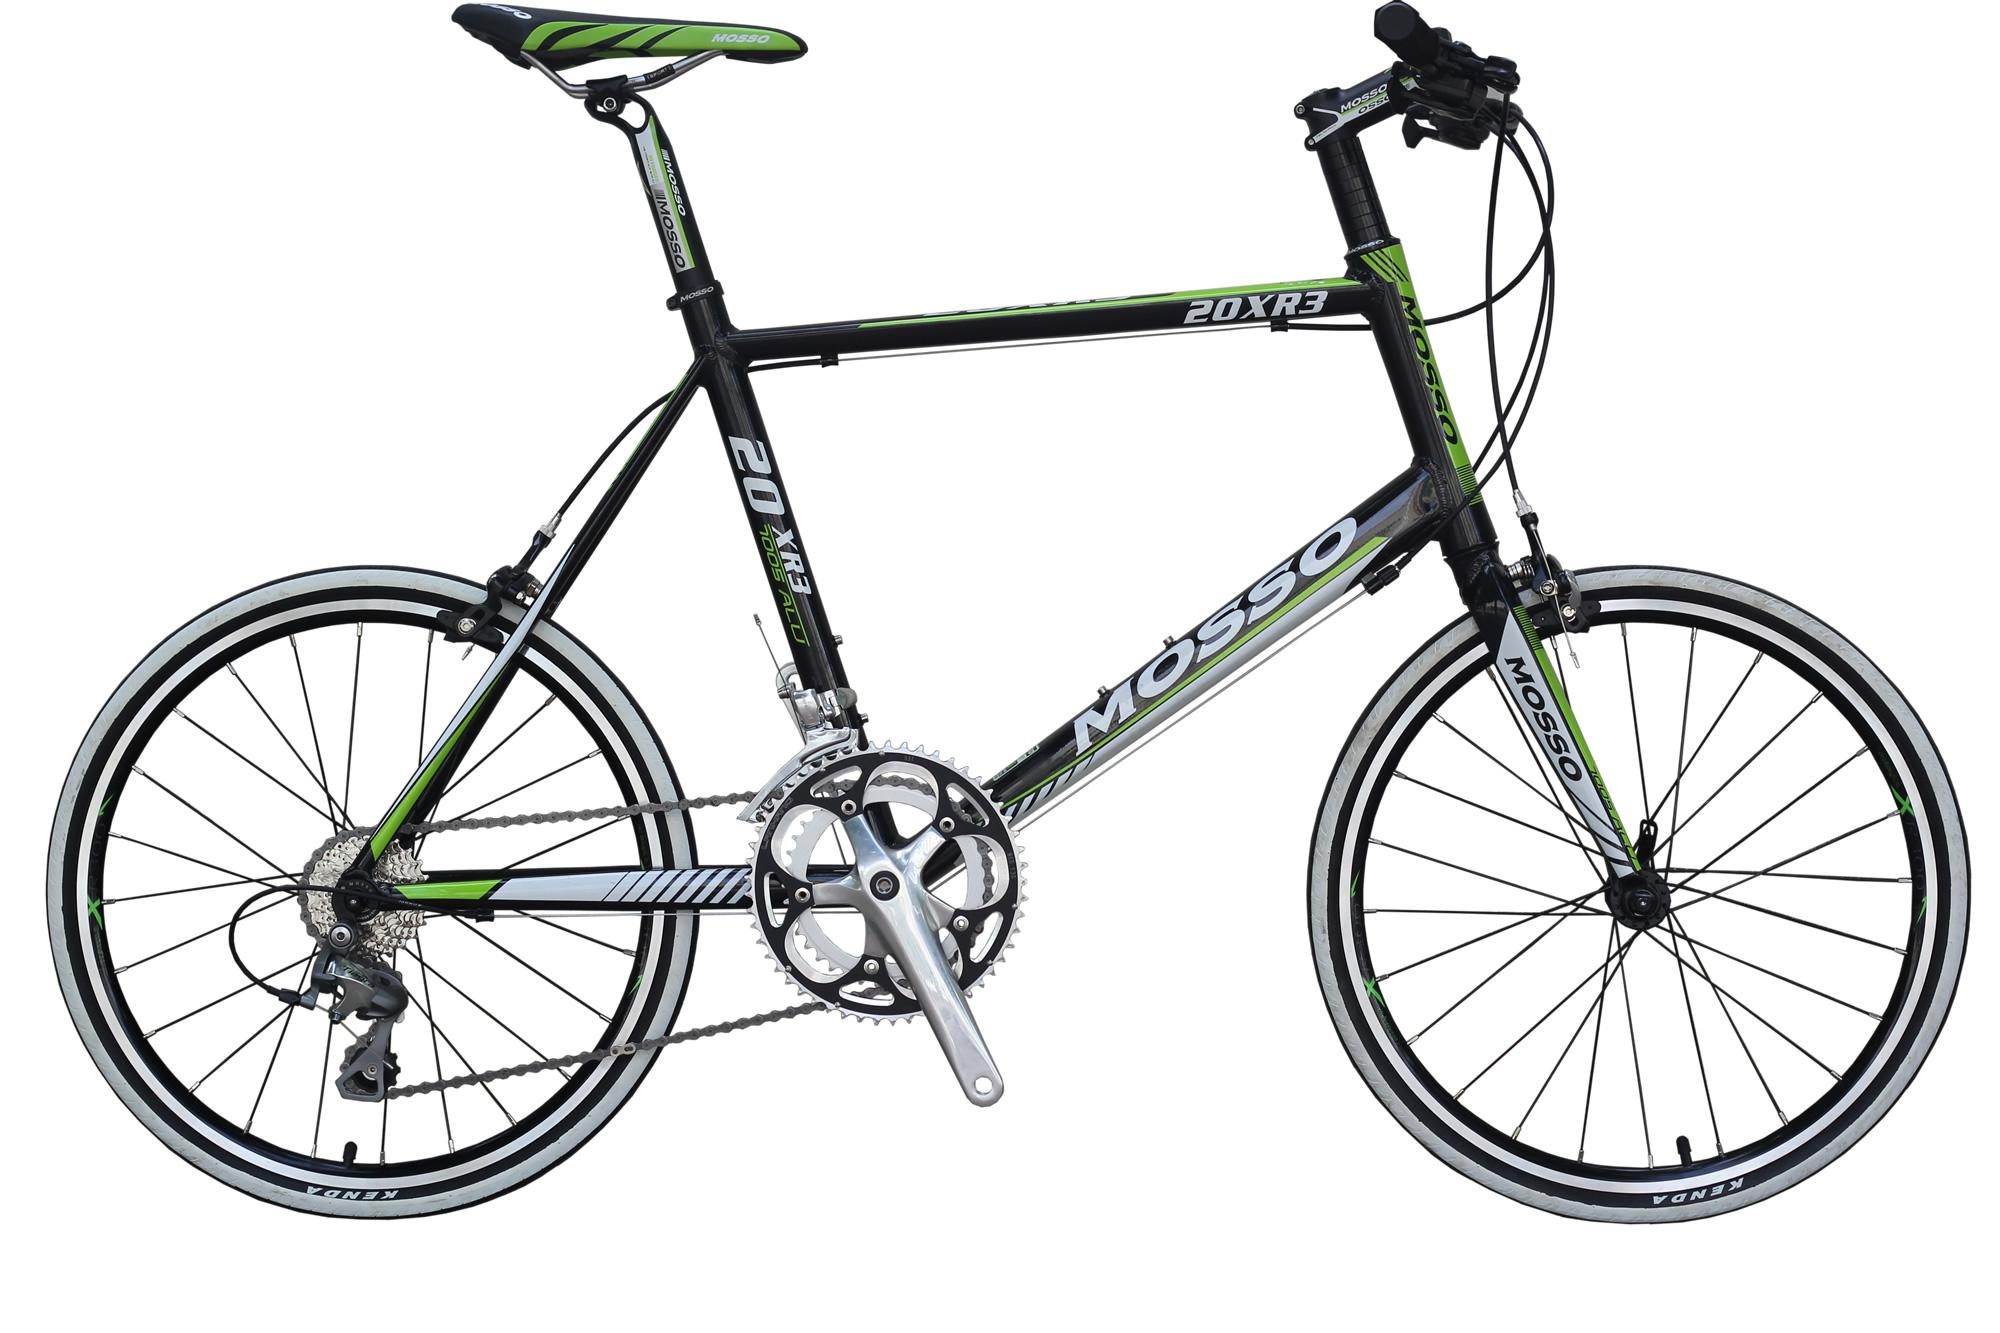 68318e82bad MOSSO R3 18 451 22 Inch Flat Speed Road Bike 20 Inch To BMX Reversed After  2 × 9 4600 Folding Bikes Girls Bikes From Powerelectronic, $954.46|  DHgate.Com